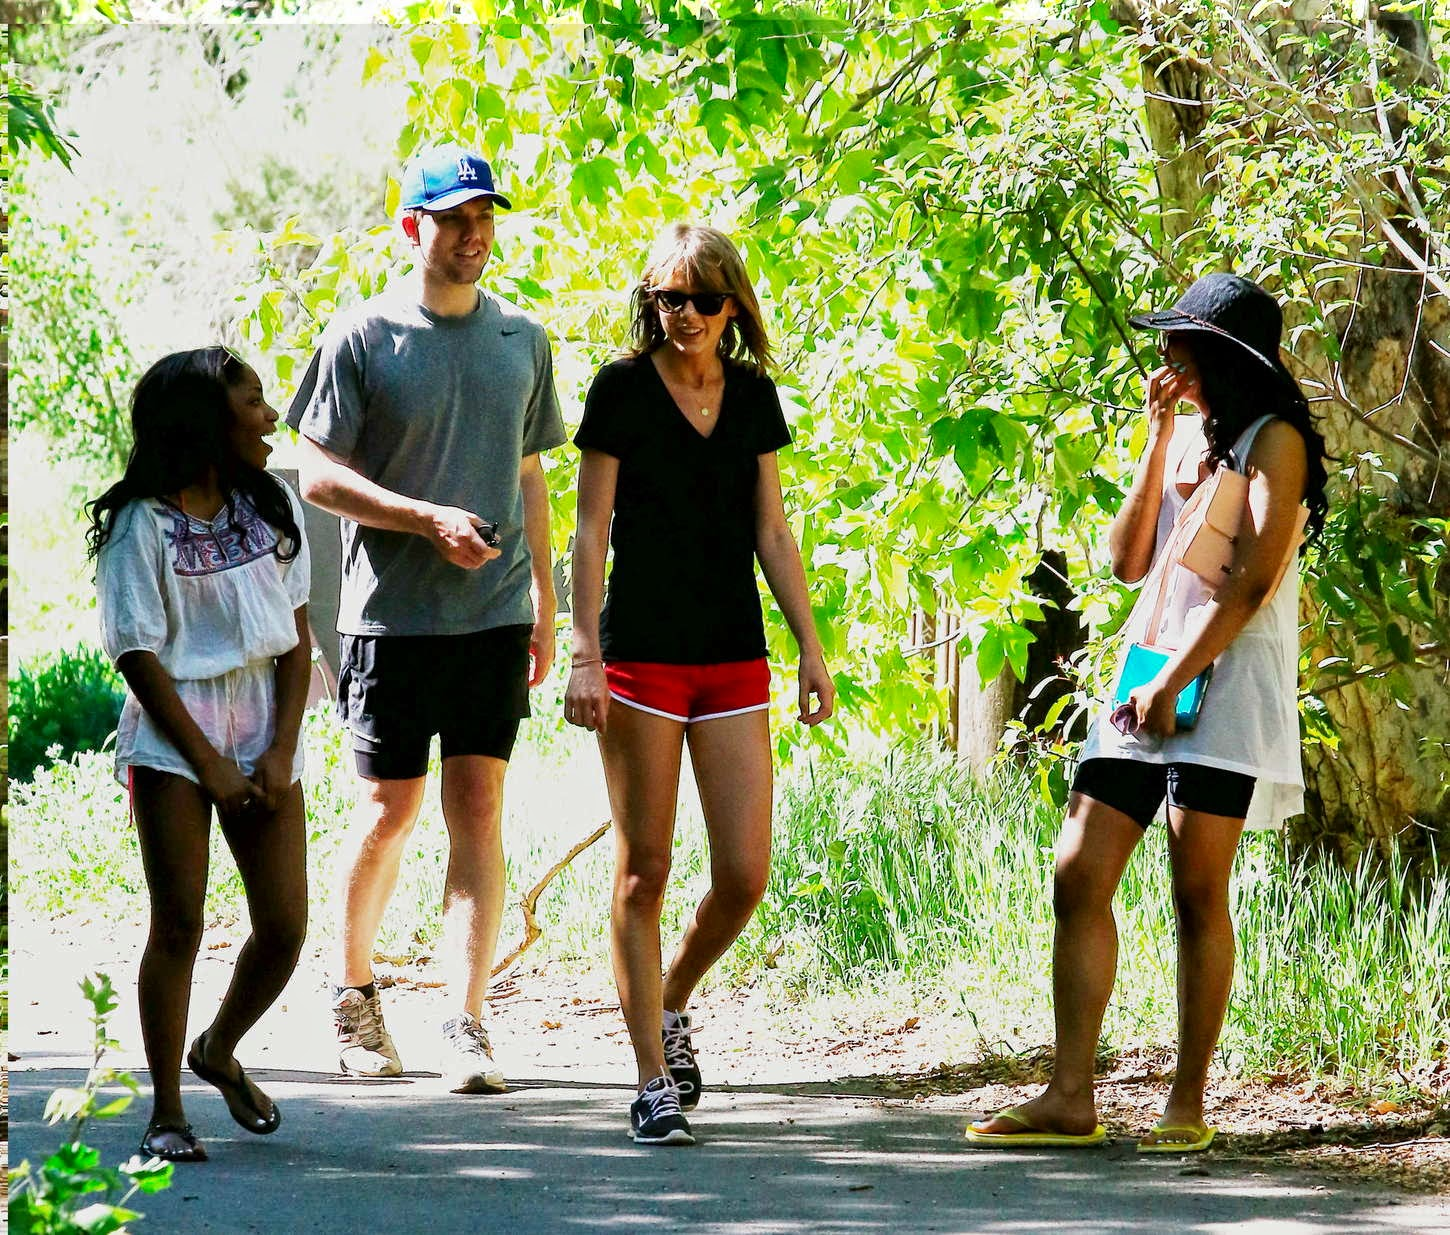 Taylor Swift hiking in Malibu